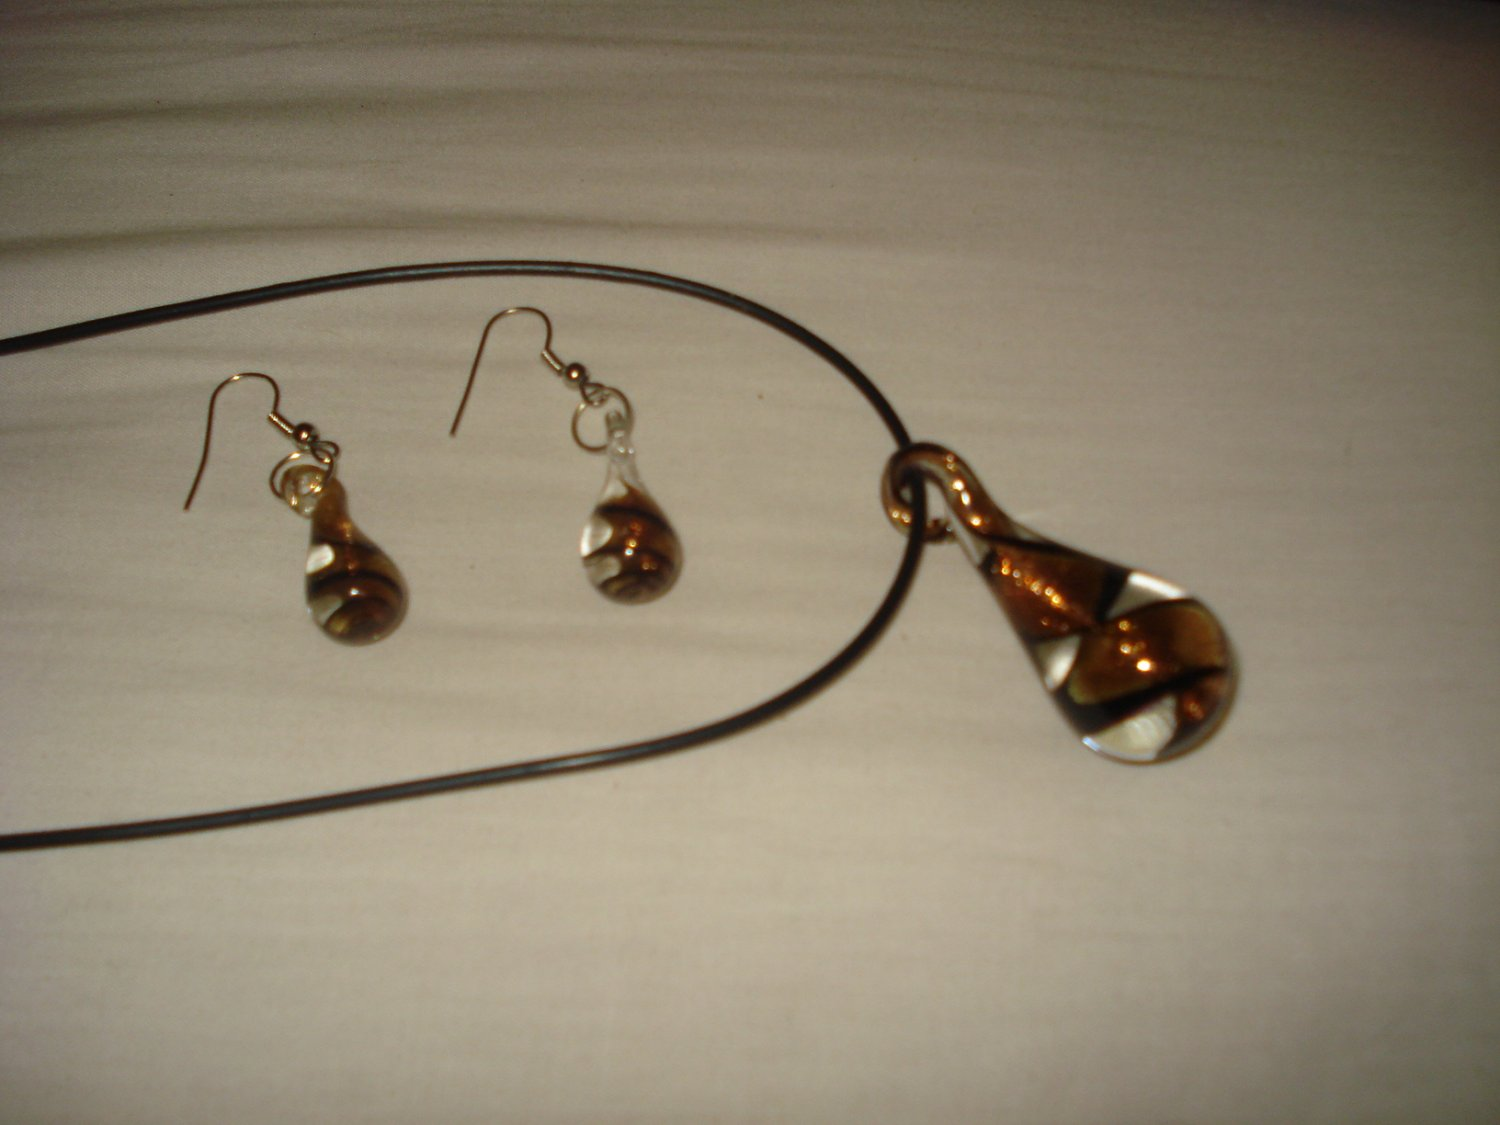 Clear glass genie bottle shaped necklace & earring set with gold and black swirls - eg10